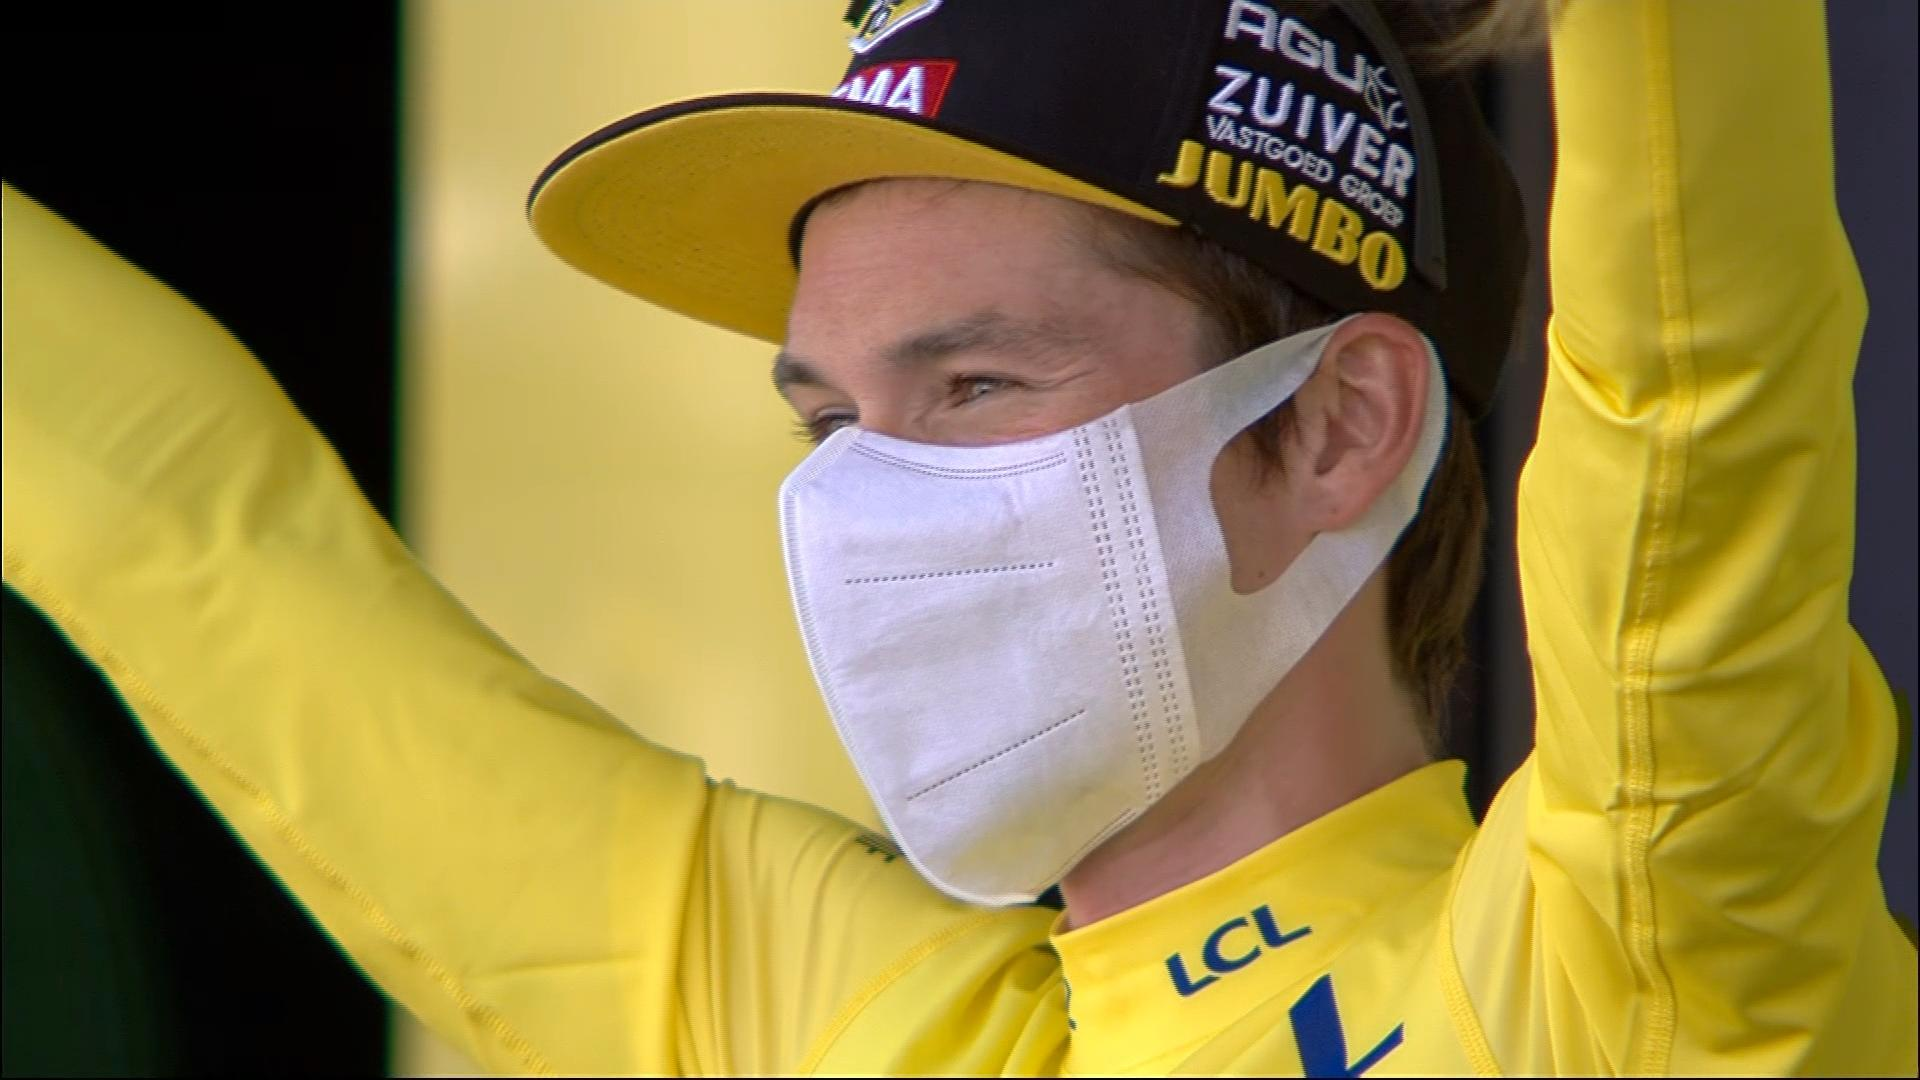 Tour De France 2020 Primoz Roglic Keeps Yellow Jersey After Stage 11 Nbc Sports